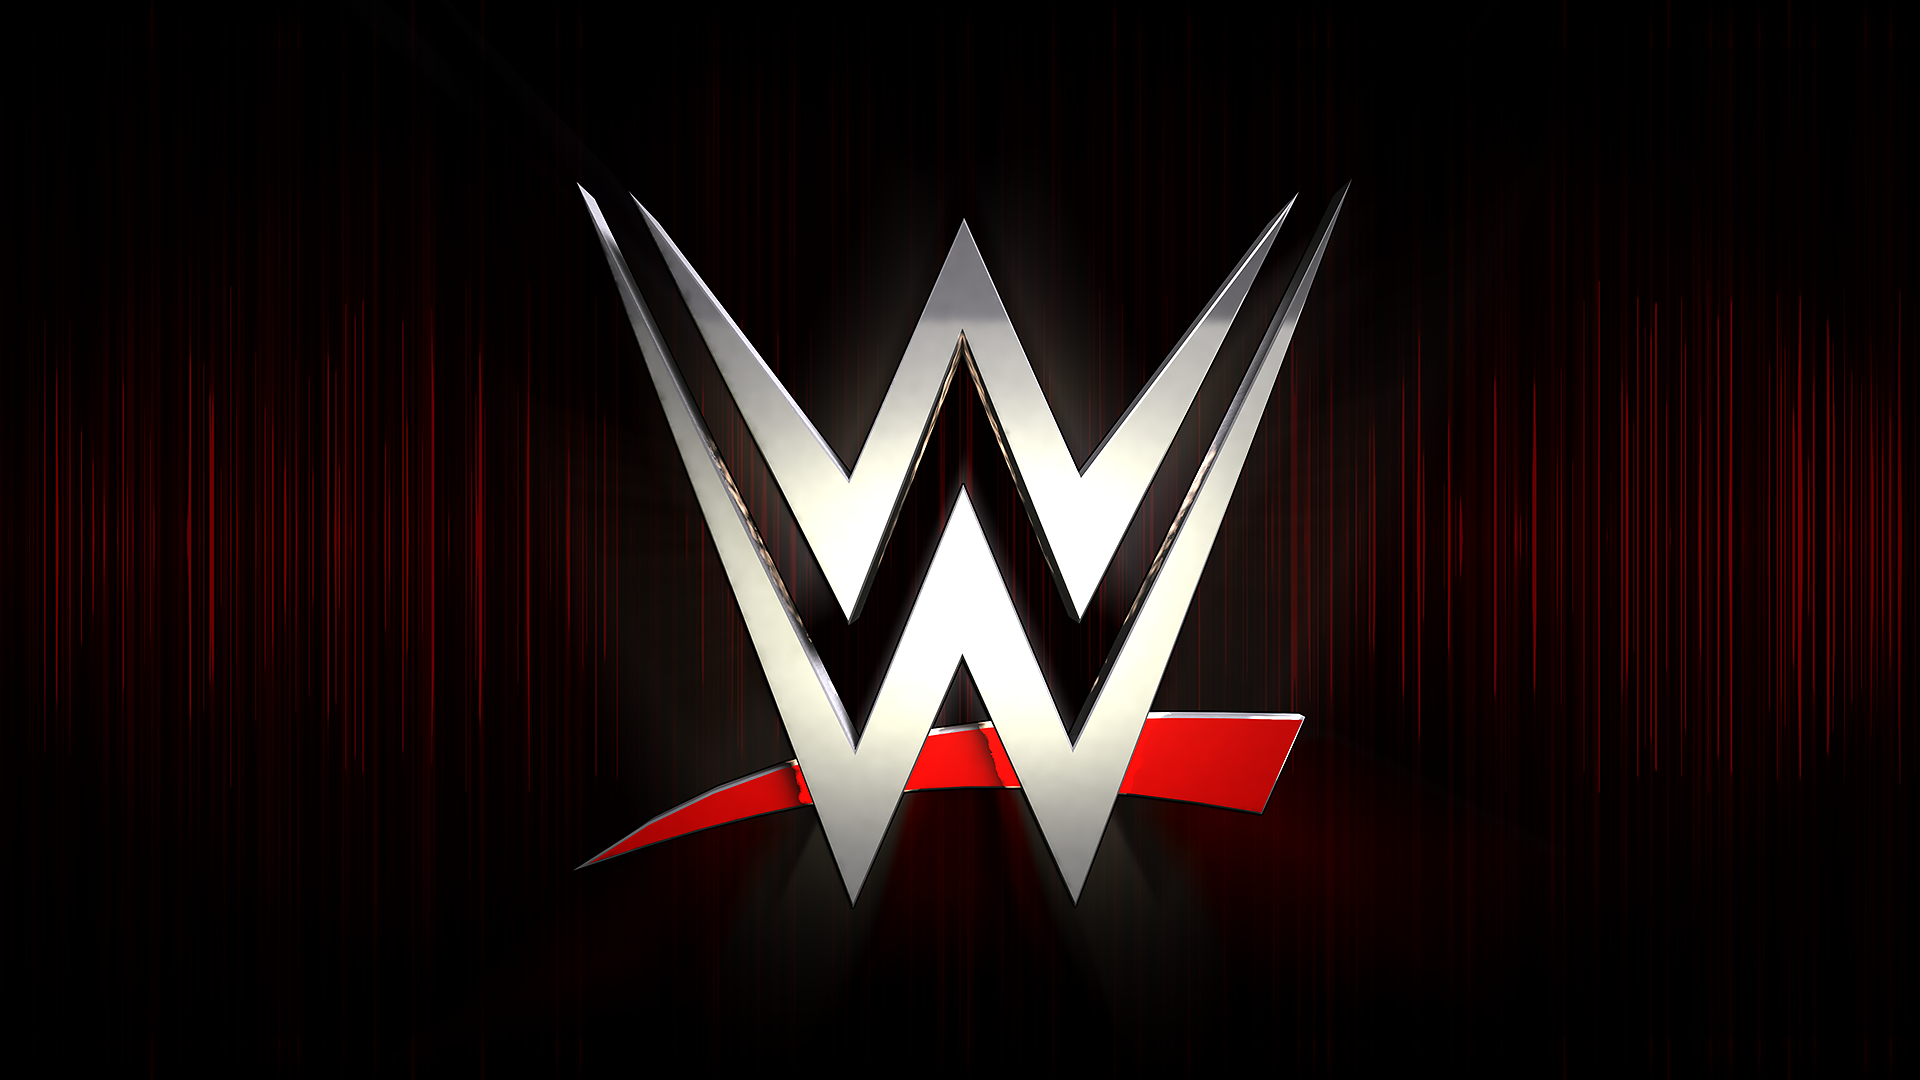 Wwe Logo New Wwe Logo Wallpaper By Majinkhan Wwe Logo Wwe